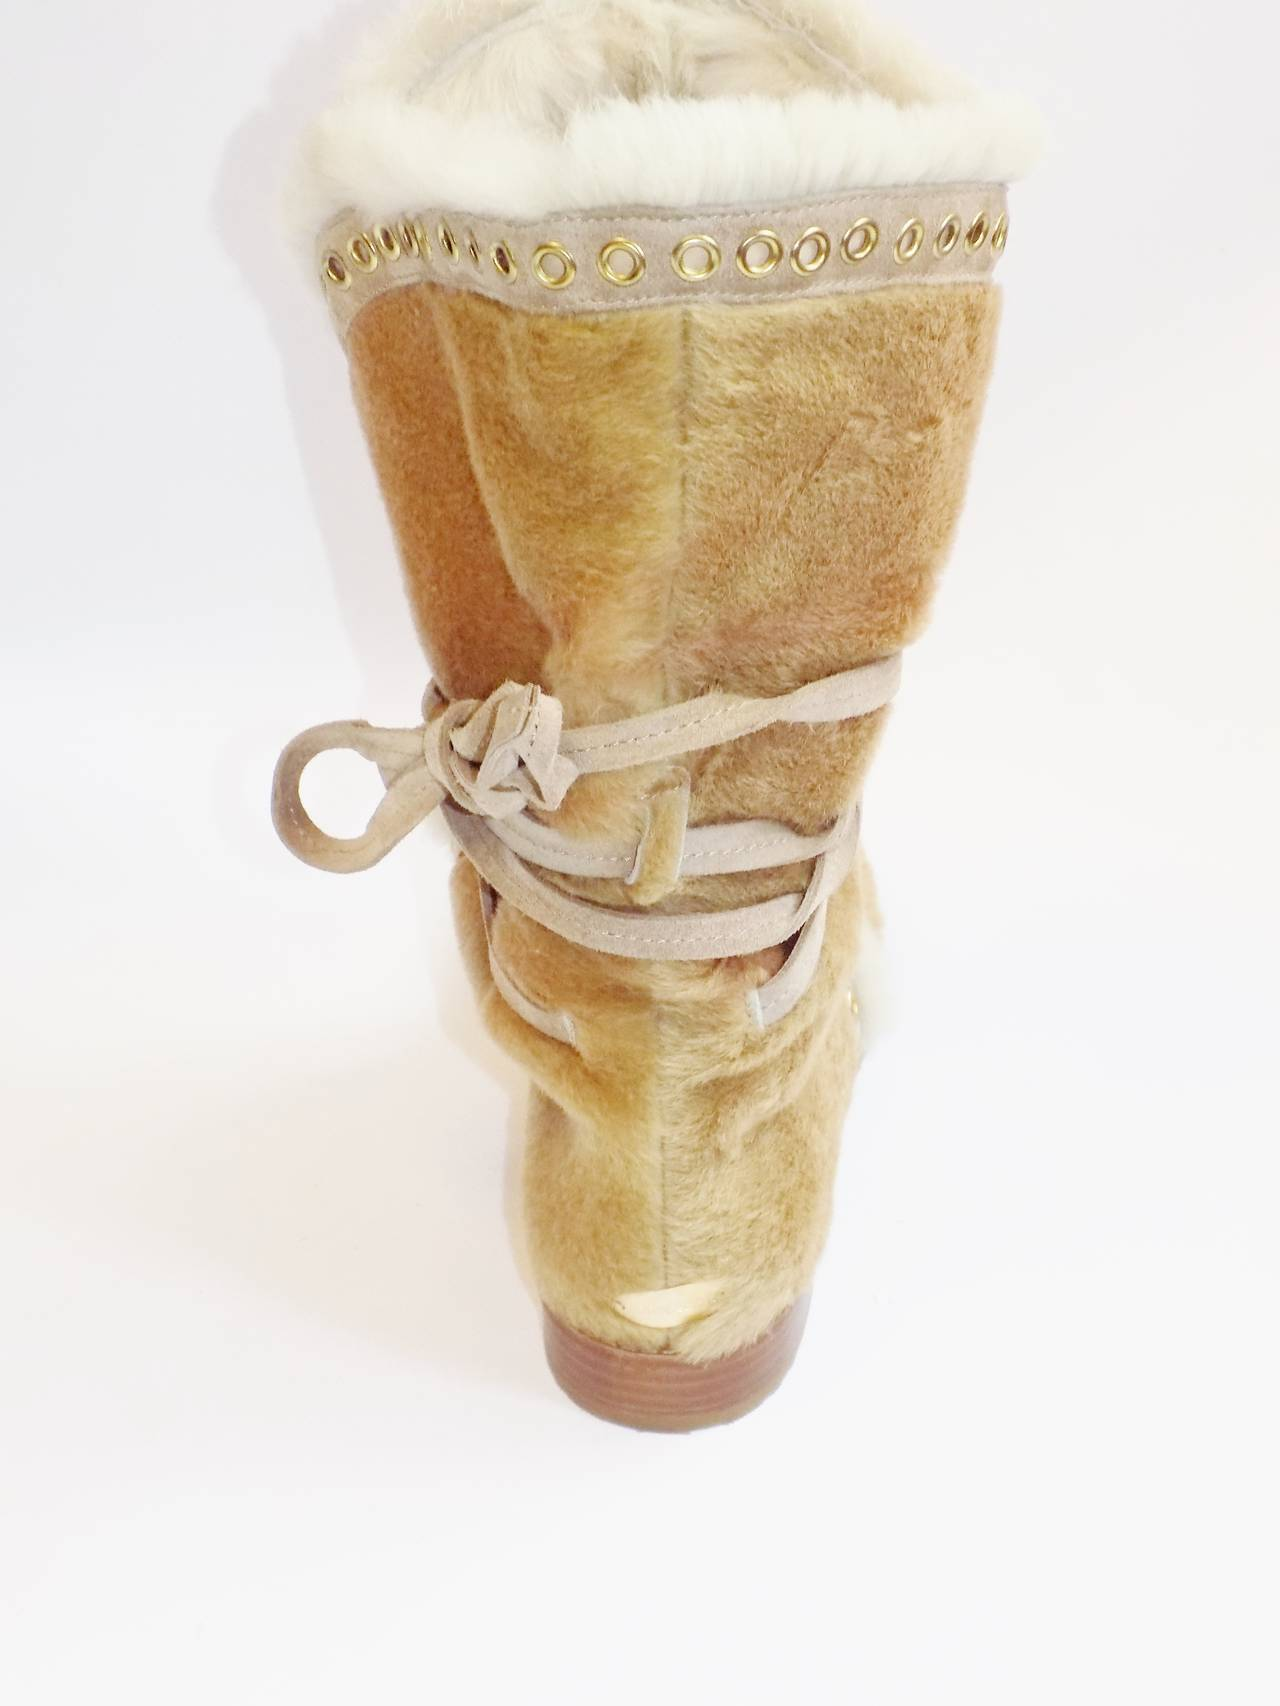 Tan pony hair boots with fur lining, suede trim with gold-tone grommets throughout and crisscross lace tie closures. 